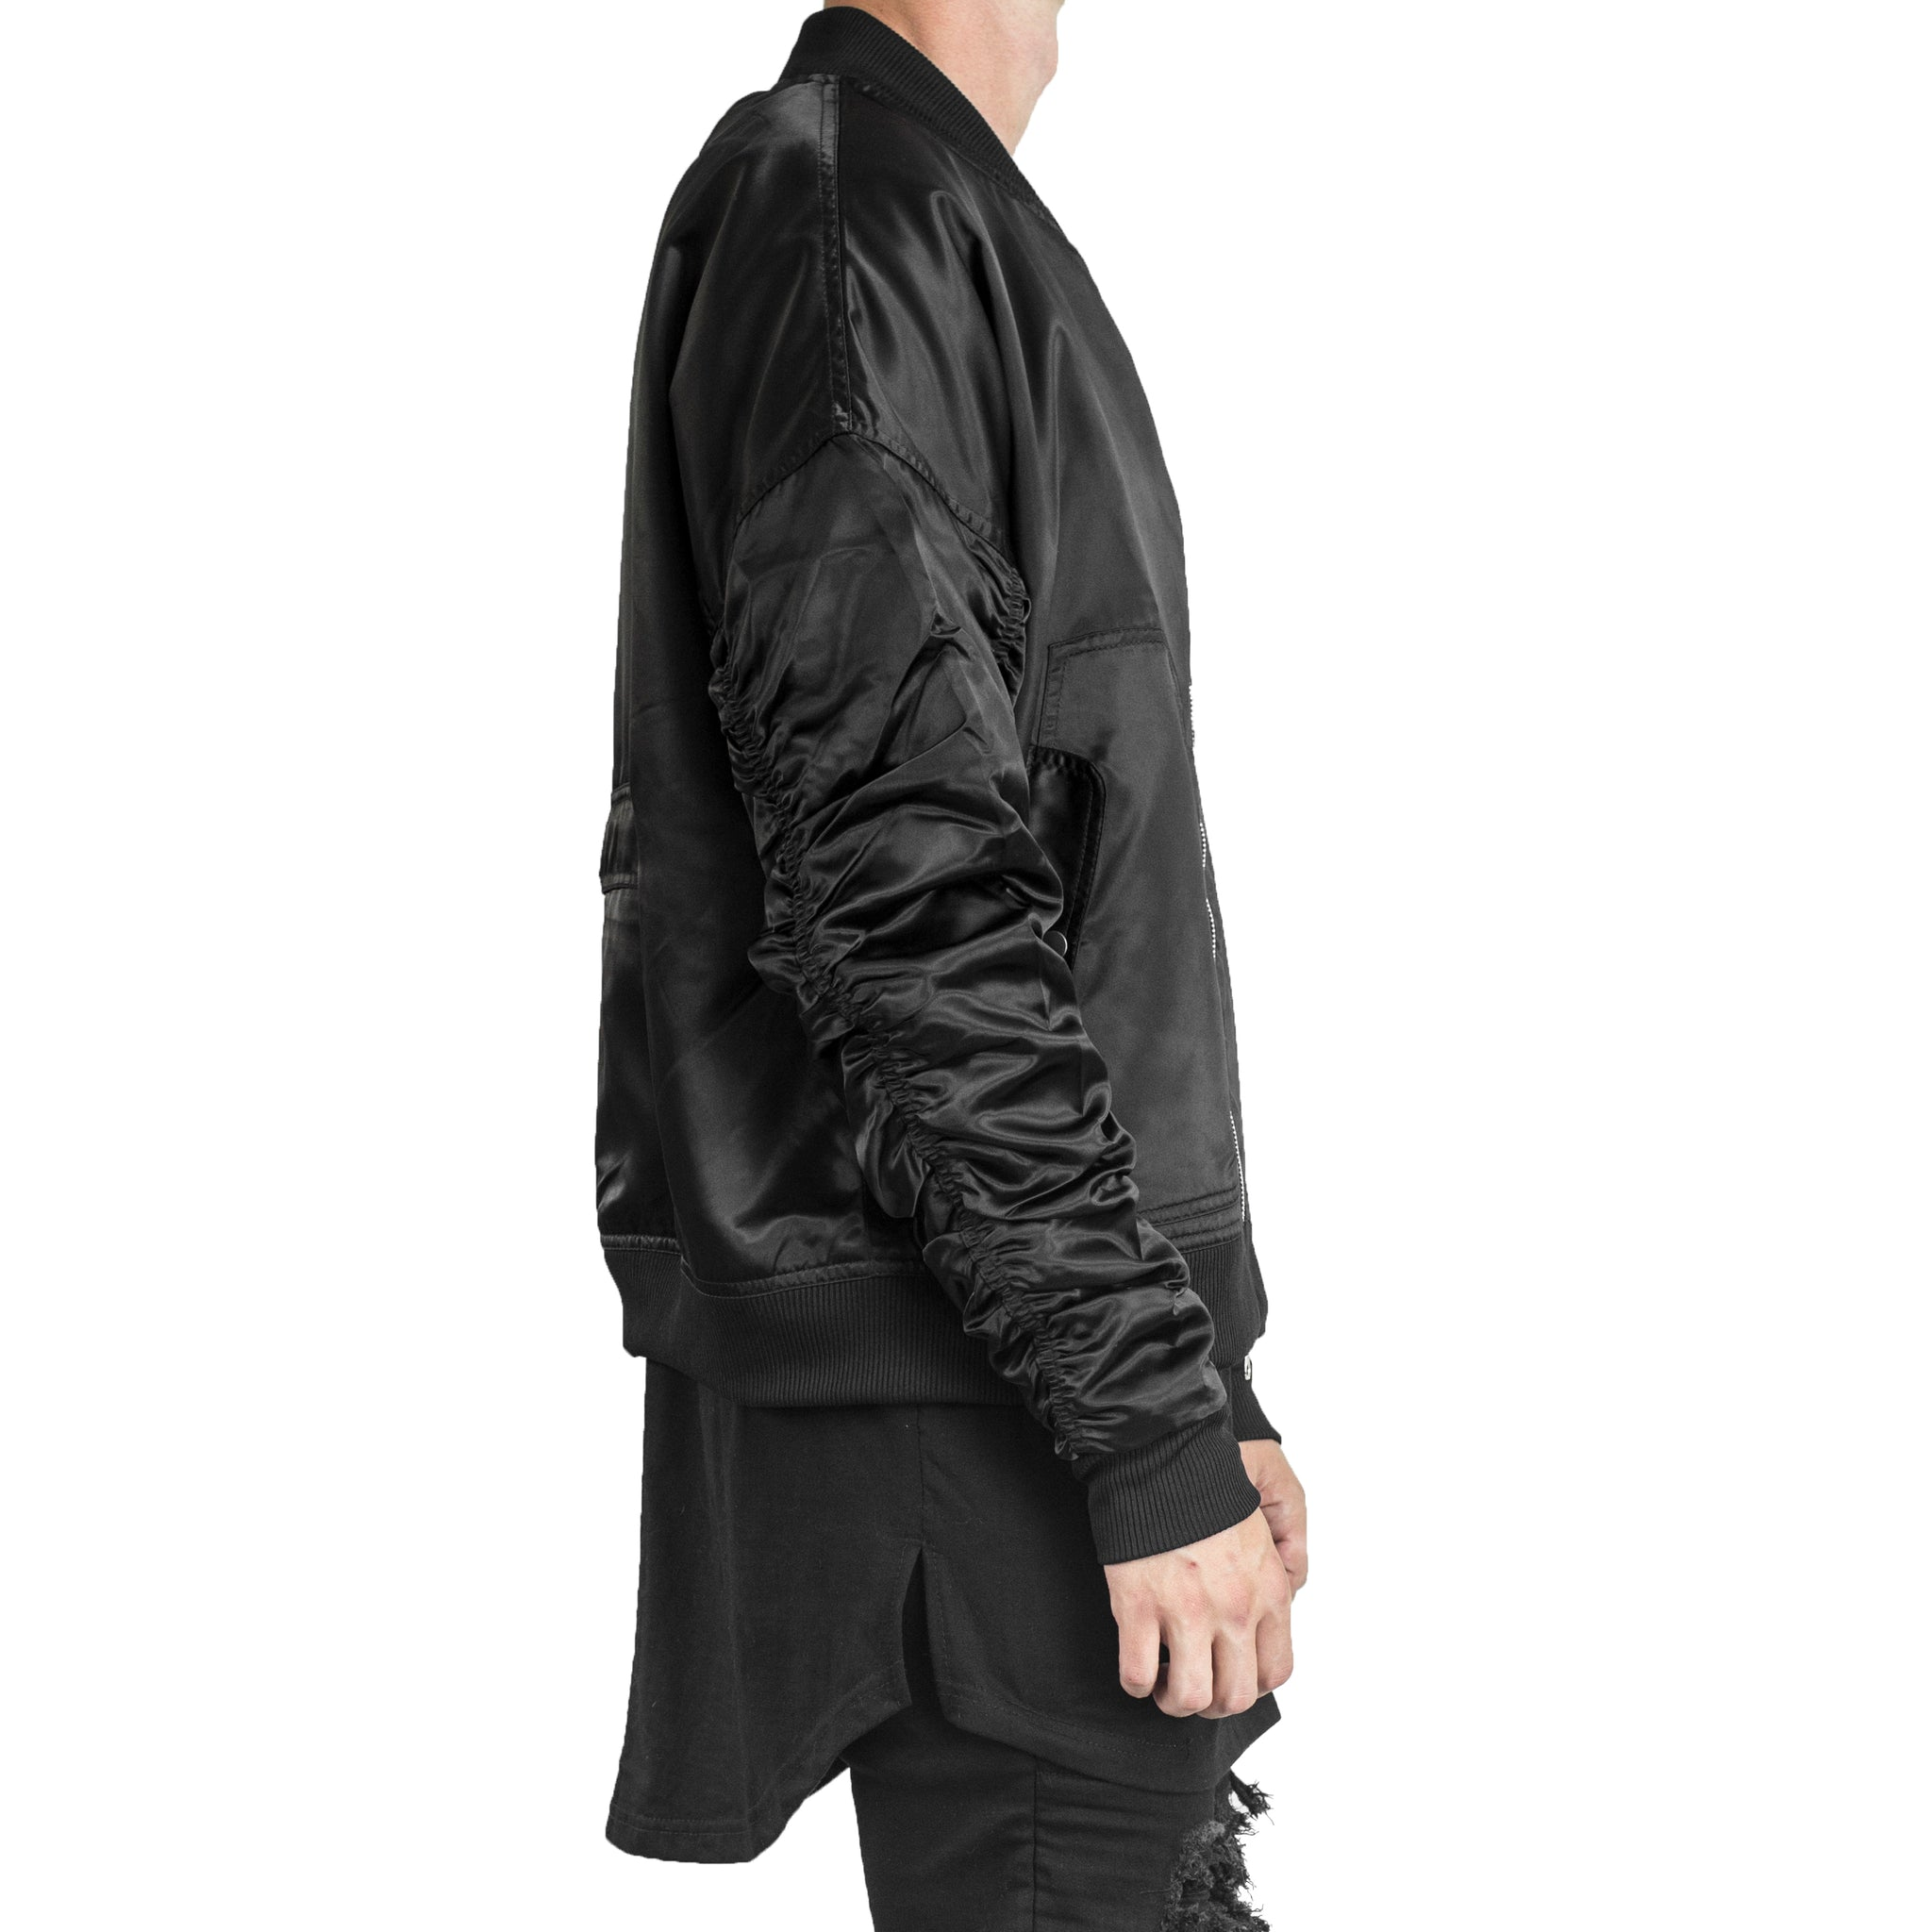 IA-1 Bomber Jacket : Black Satin